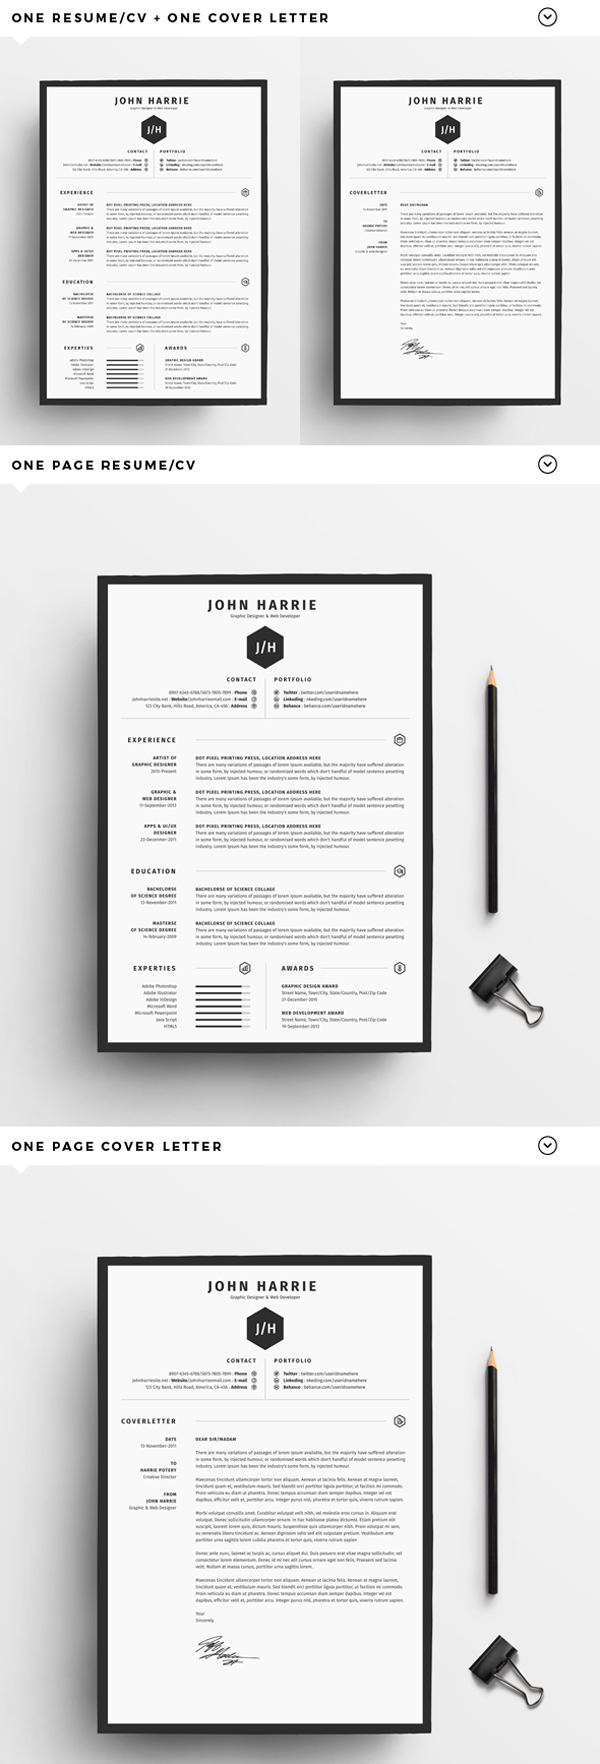 Font Of Cover Letter